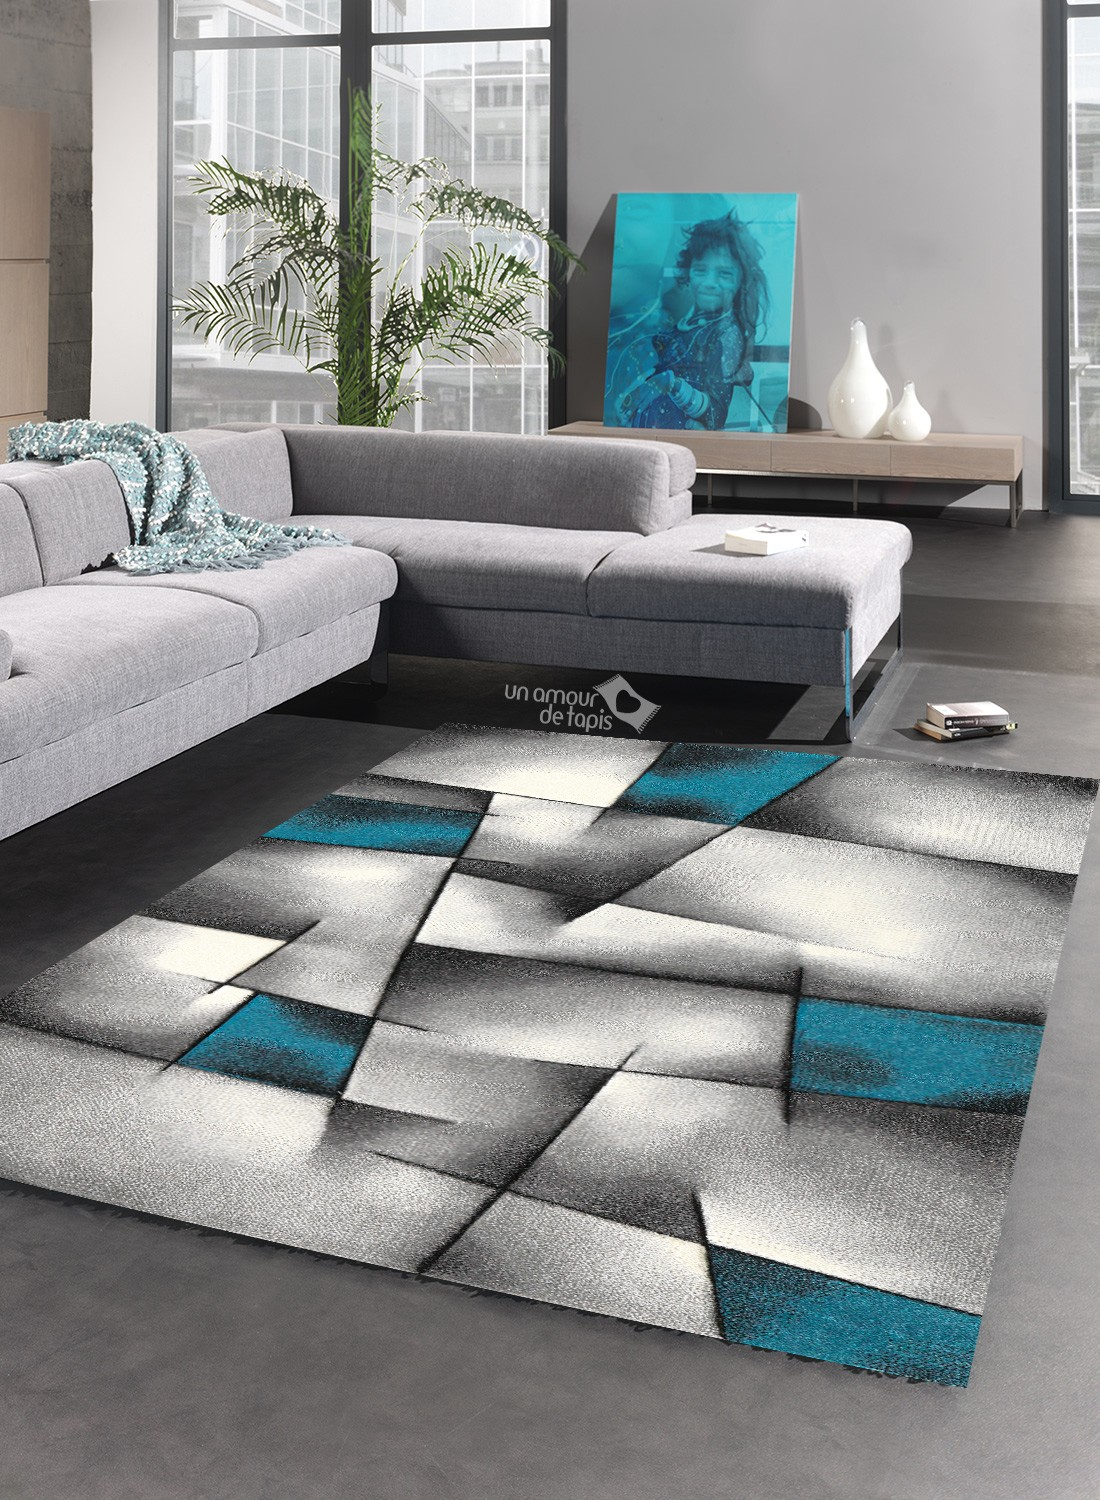 tapis gris et turquoise id es de d coration int rieure french decor. Black Bedroom Furniture Sets. Home Design Ideas